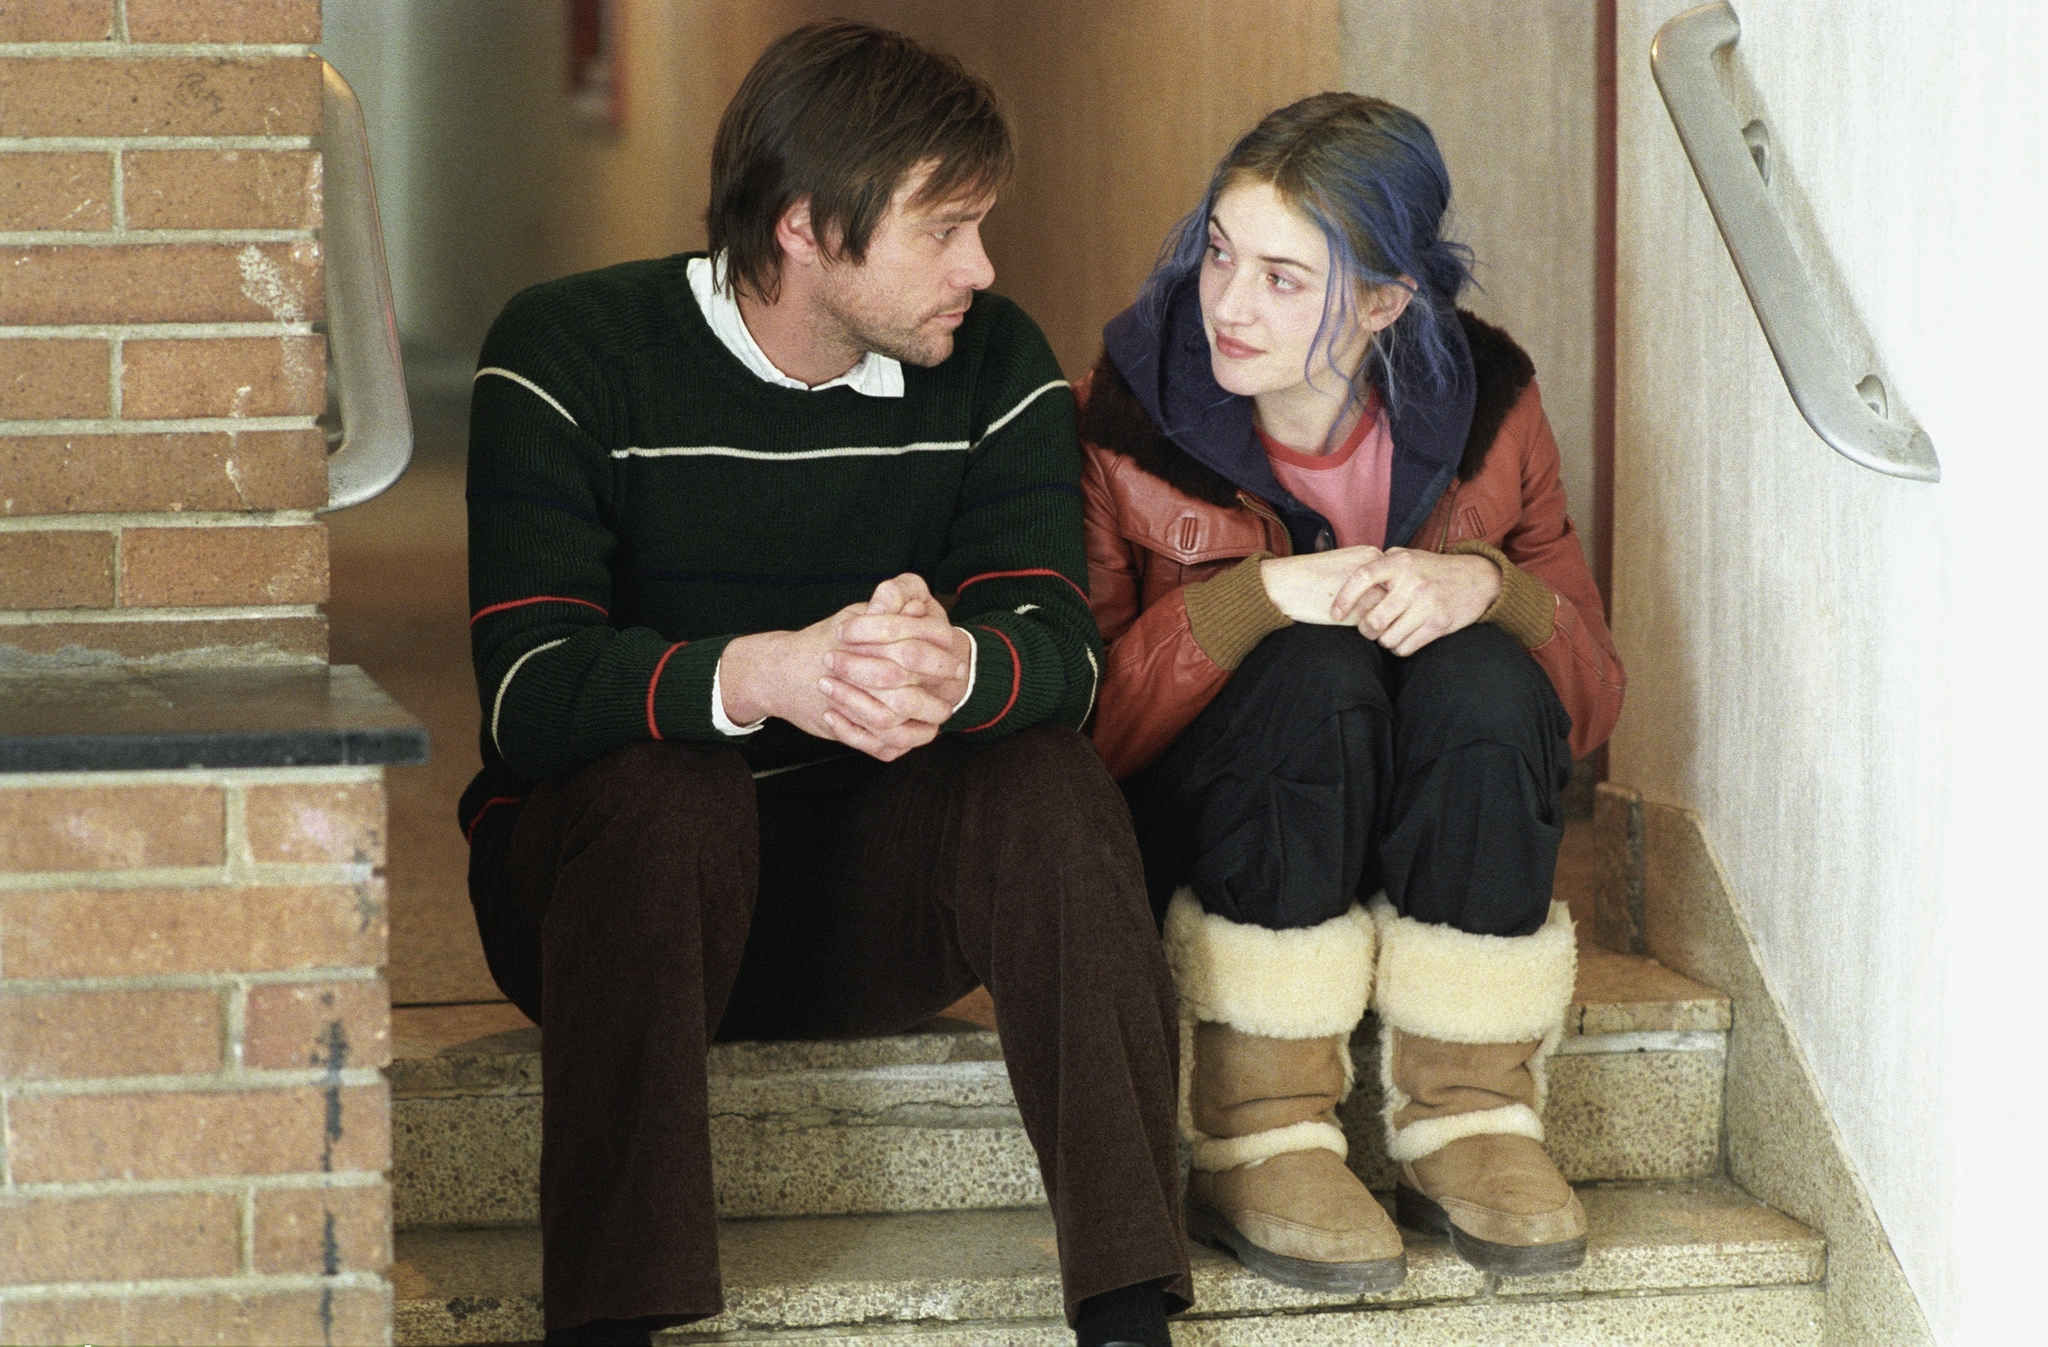 tom hooper great love stories on film imdb jim carrey and kate winslet in eternal sunshine of the spotless mind 2004